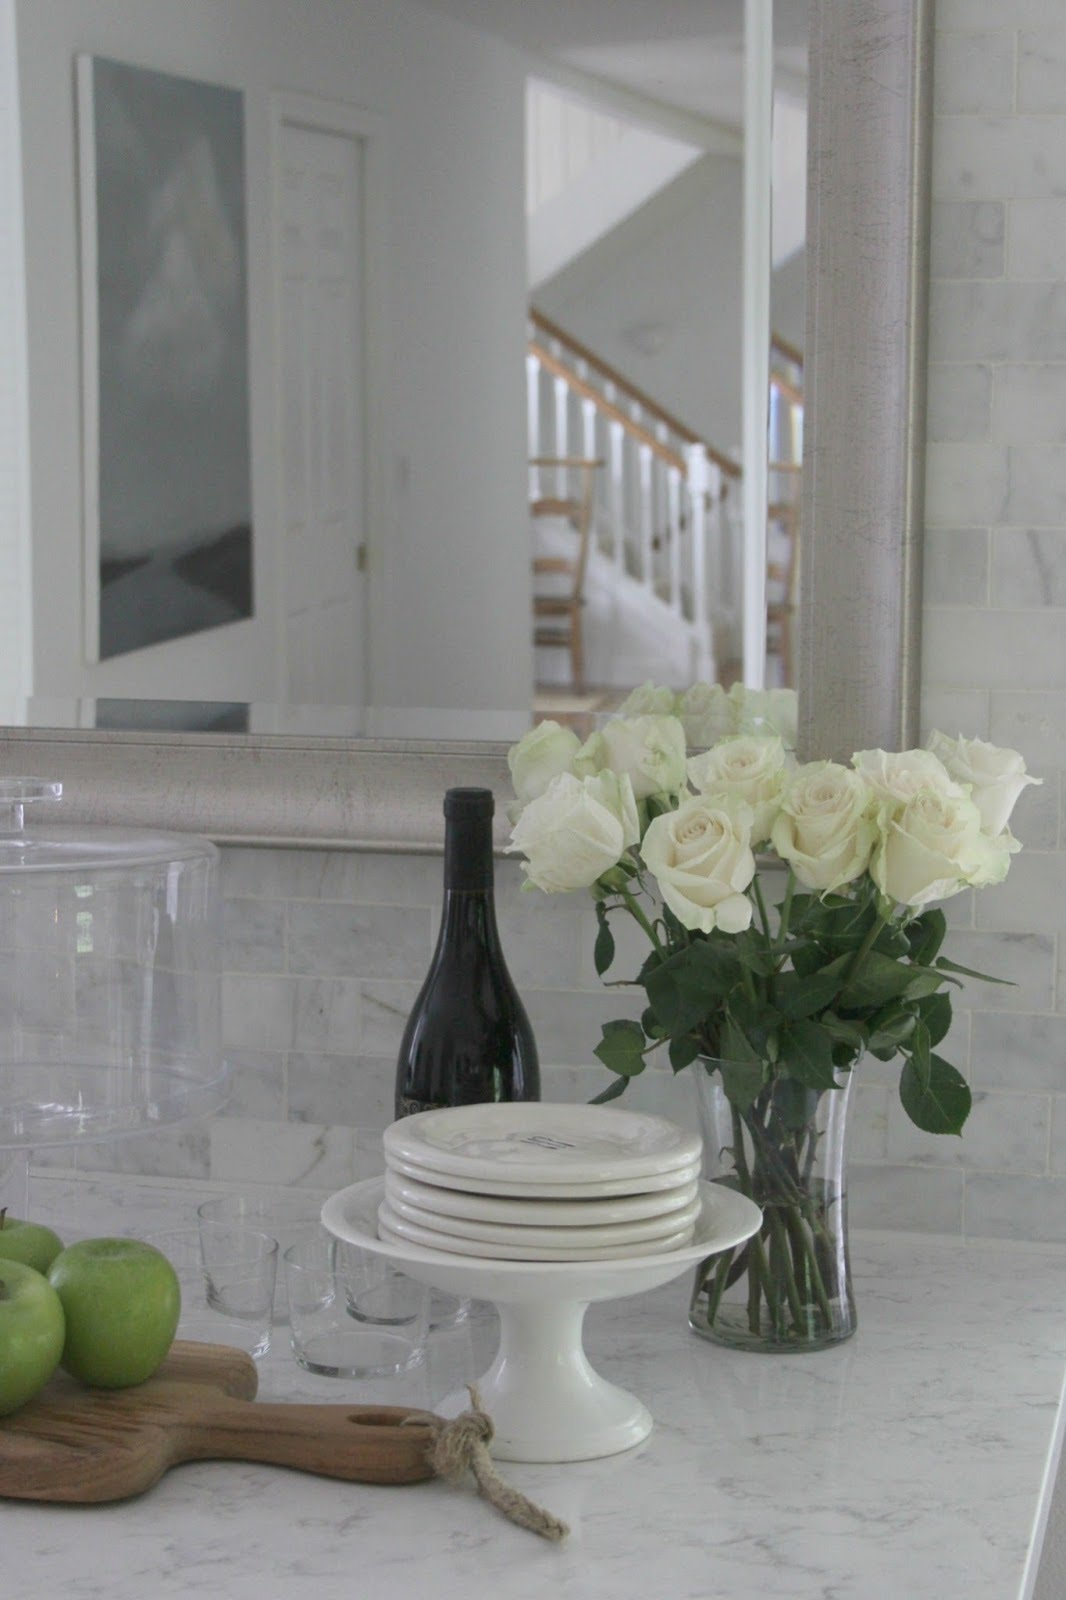 Serene white kitchen decor with Viatera Minuet countertop, marble subway tiles, white roses, and silver framed mirror. #whitekitchen #whitedecor #kitchendecor #subwaytile #quartz #whiteroses #hellolovelystudio #timelessdesign #serene